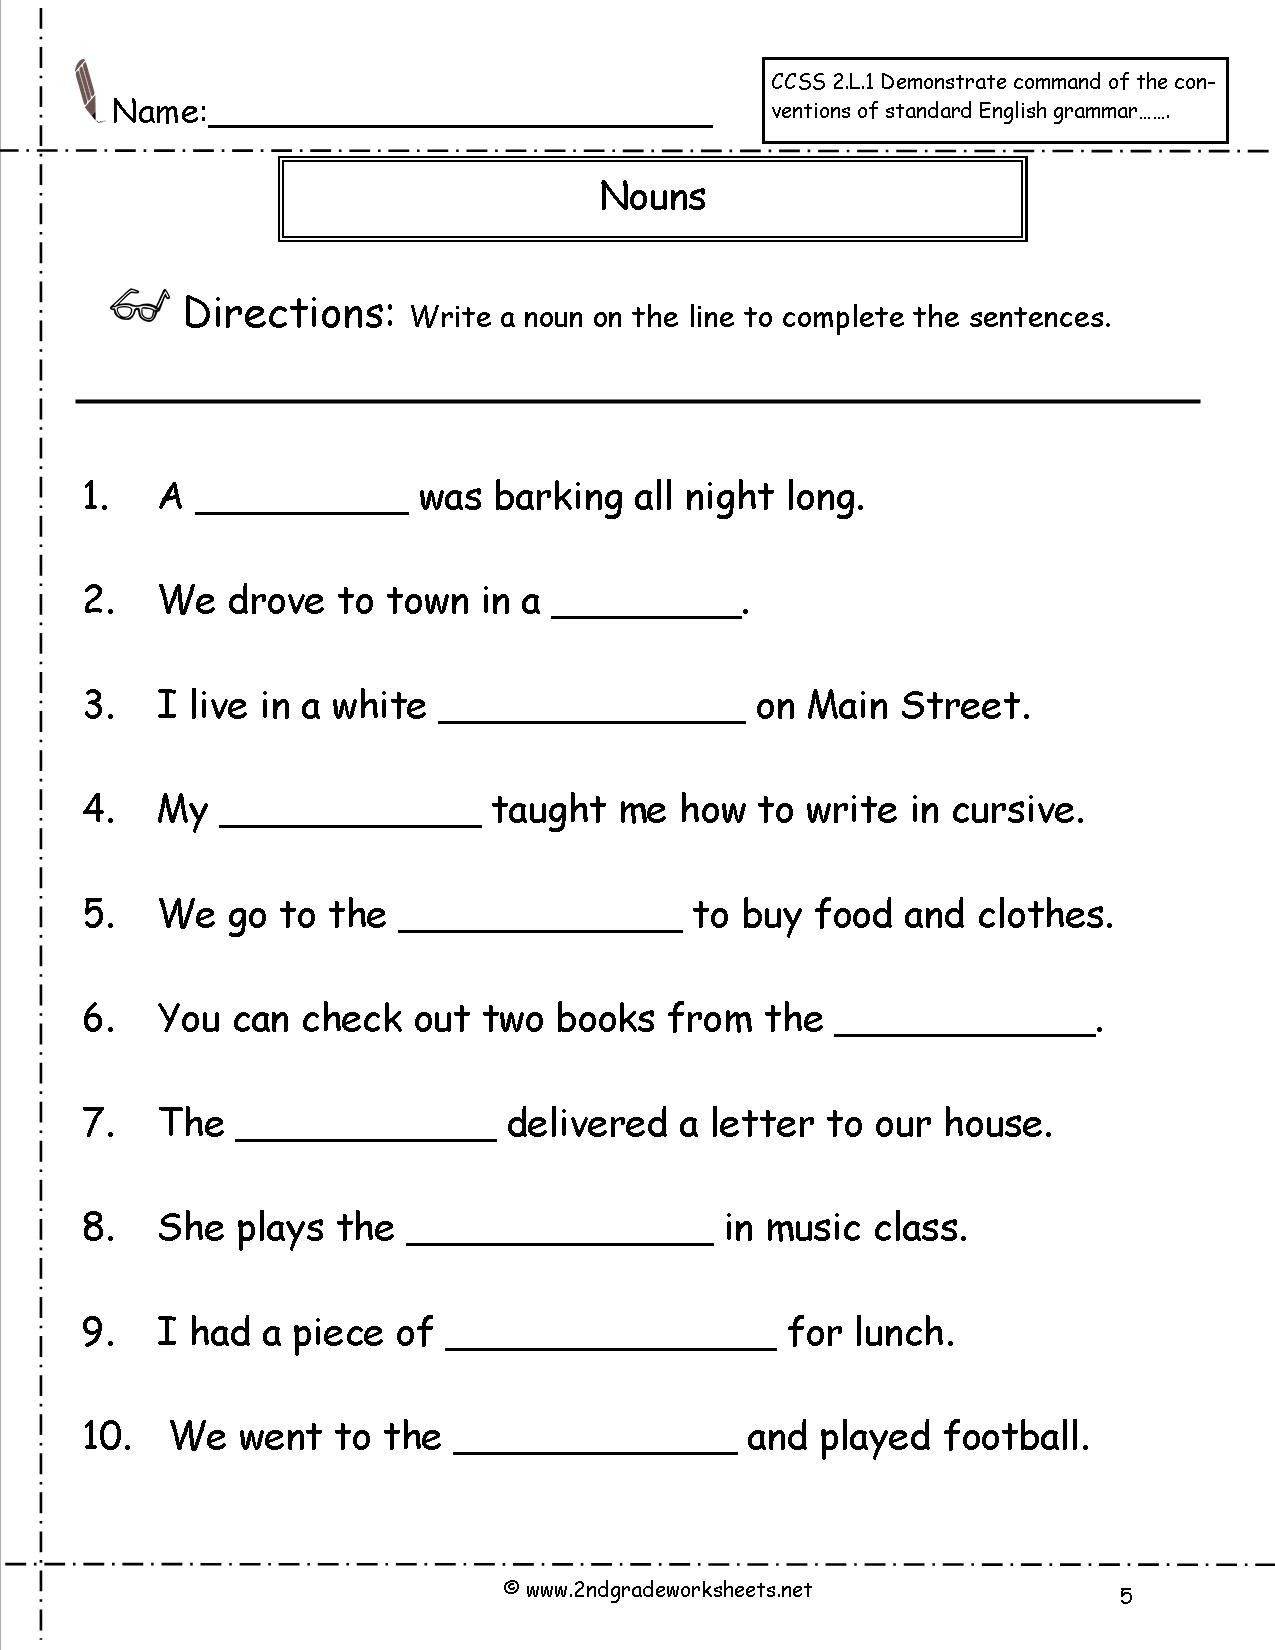 4th Grade English Worksheets English Grammar Noun Worksheet for Grade 1 Elegant Nouns